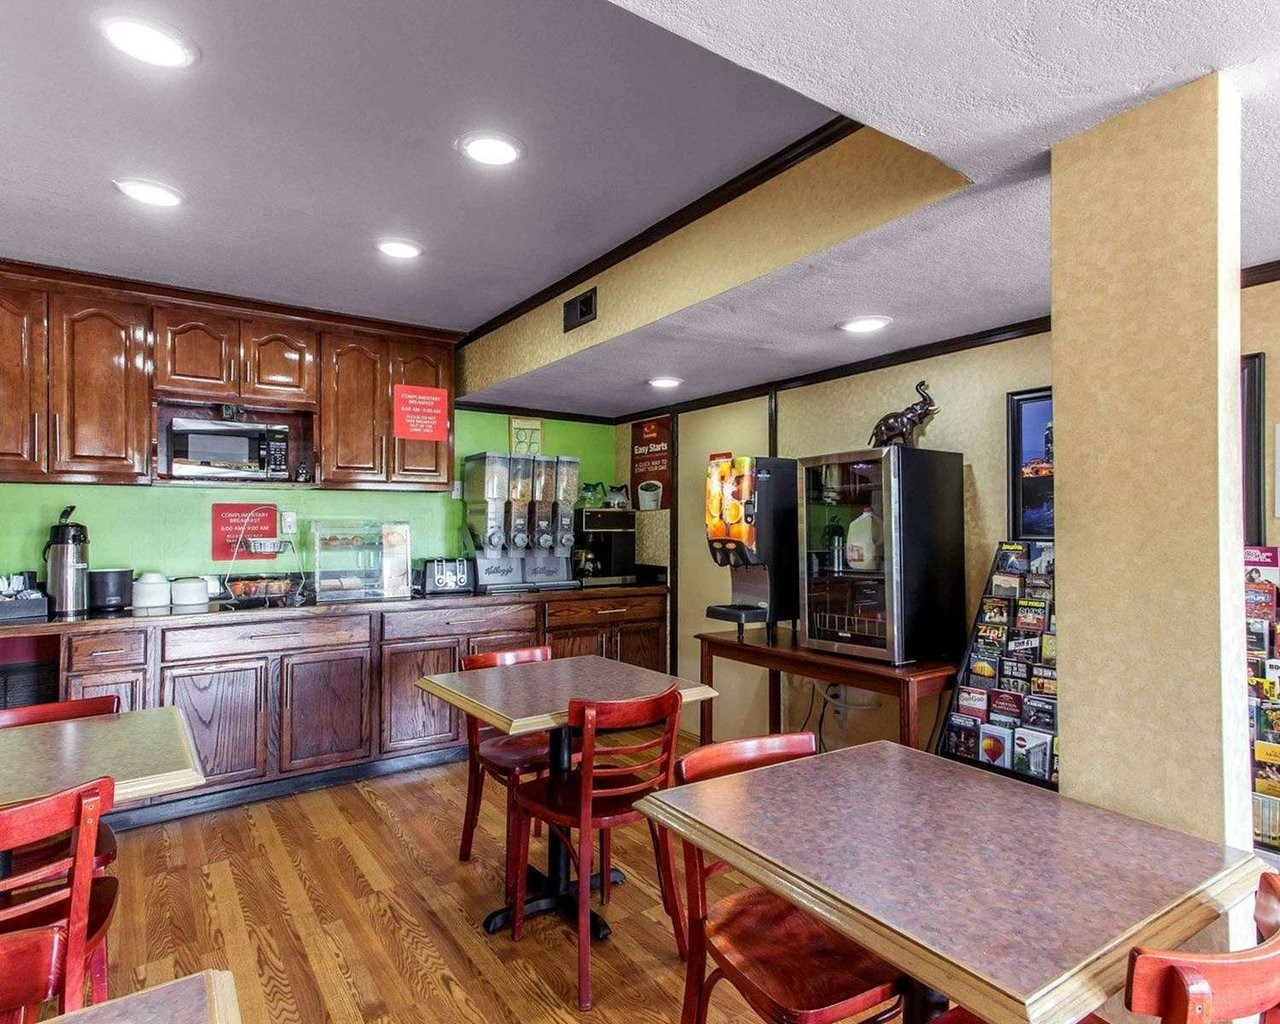 hardwood floor cleaning nashville tn of econo lodge percy priest drive 58 i¶6i¶7i¶ updated 2018 prices regarding econo lodge percy priest drive 58 i¶6i¶7i¶ updated 2018 prices motel reviews nashville tn tripadvisor